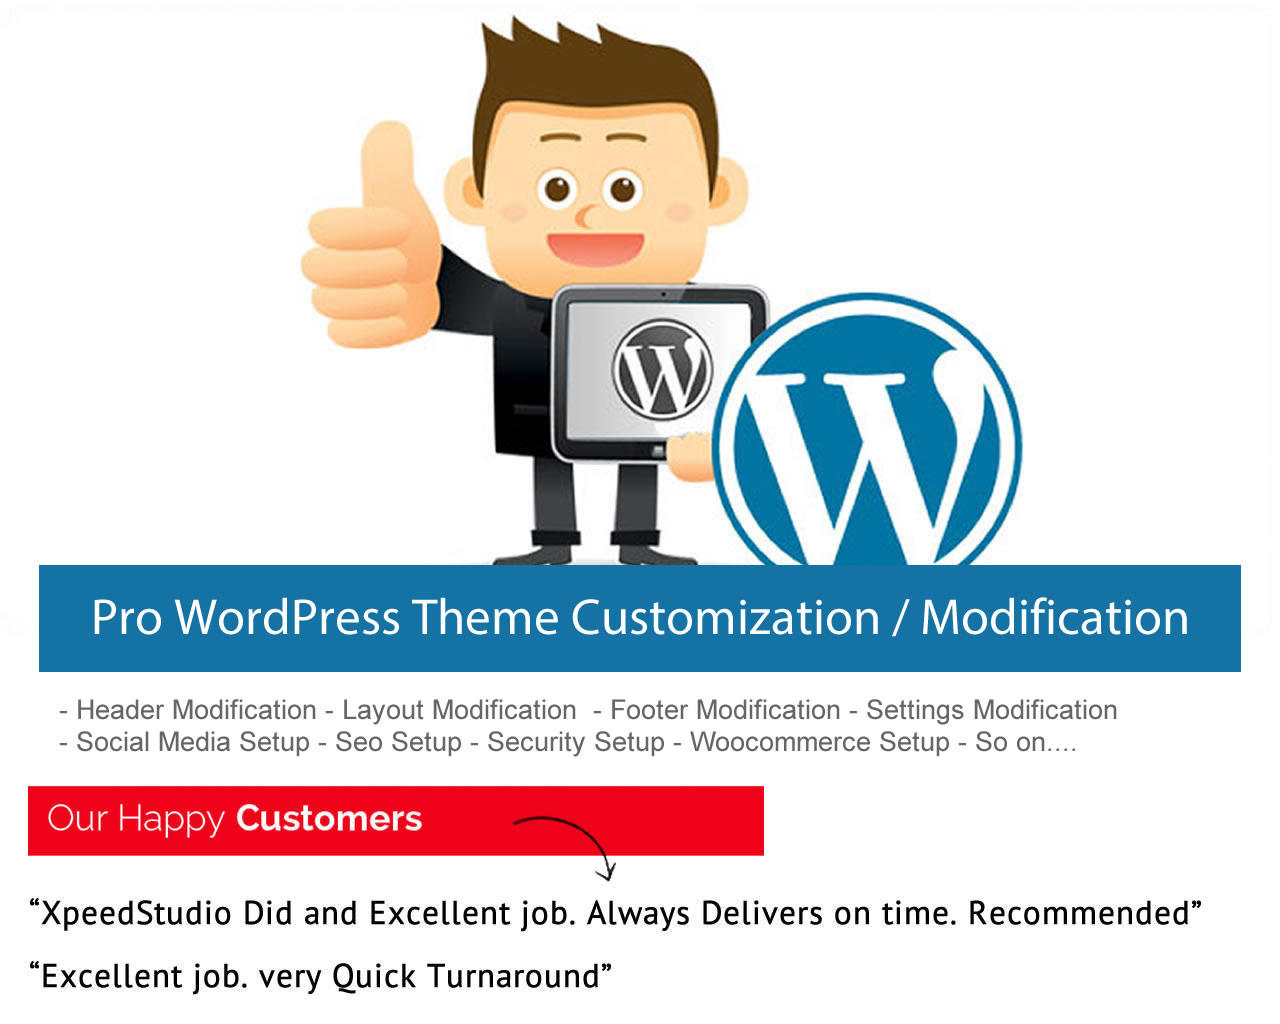 Pro WordPress Theme Customization / Modification with care by XpeedStudio - 103164